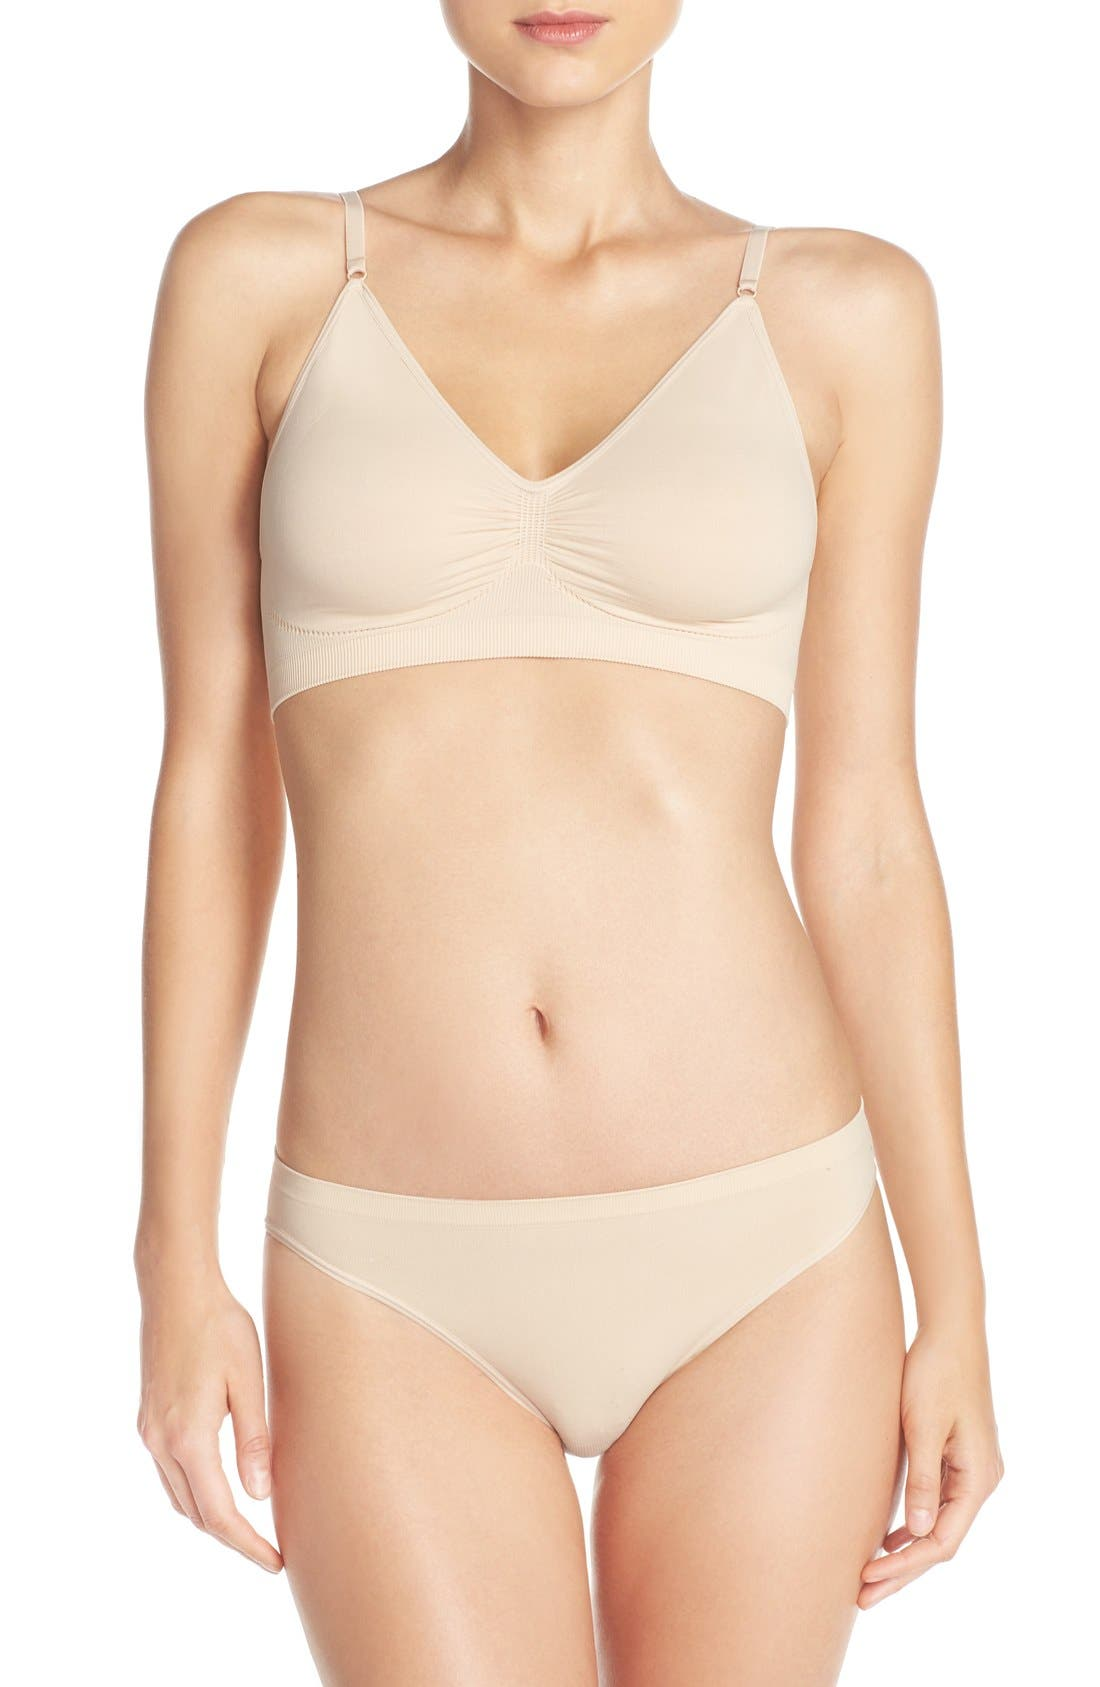 Nordstrom Lingerie Seamless Day Bra & High Cut Briefs